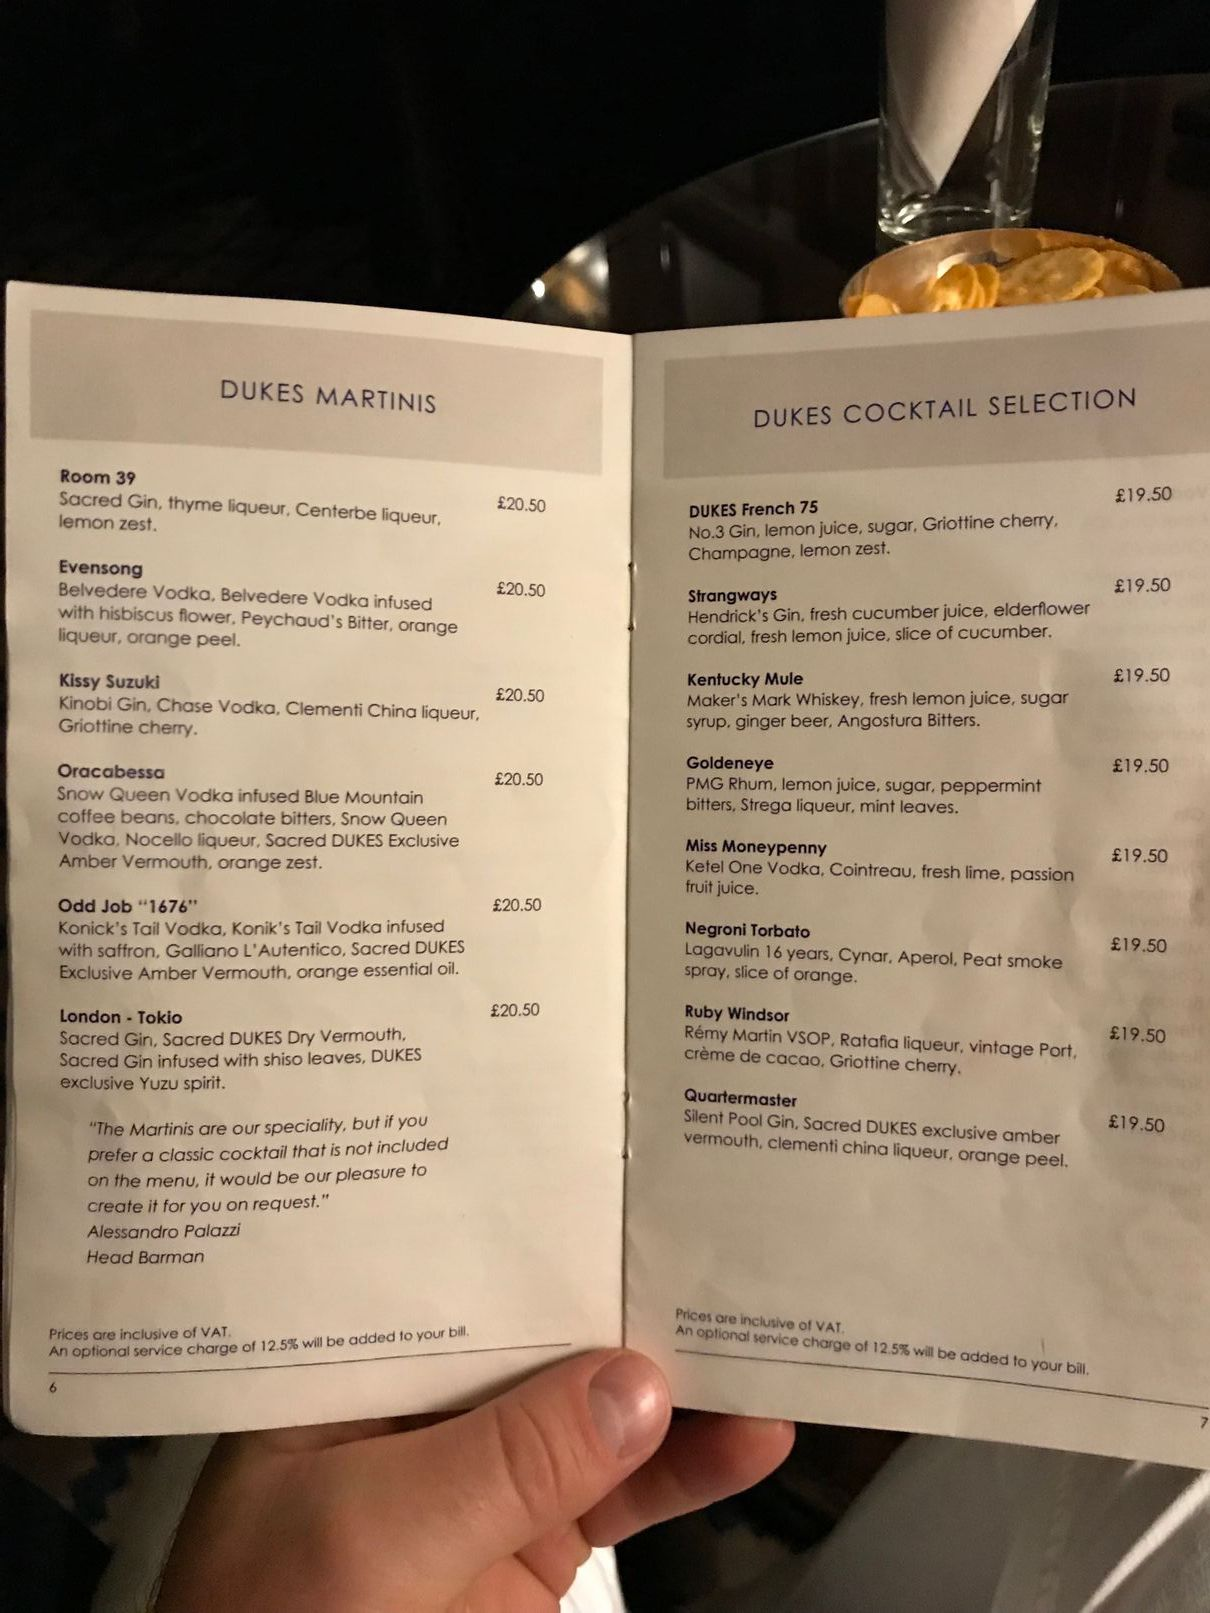 Cocktail and martini menu at Dukes Bar London